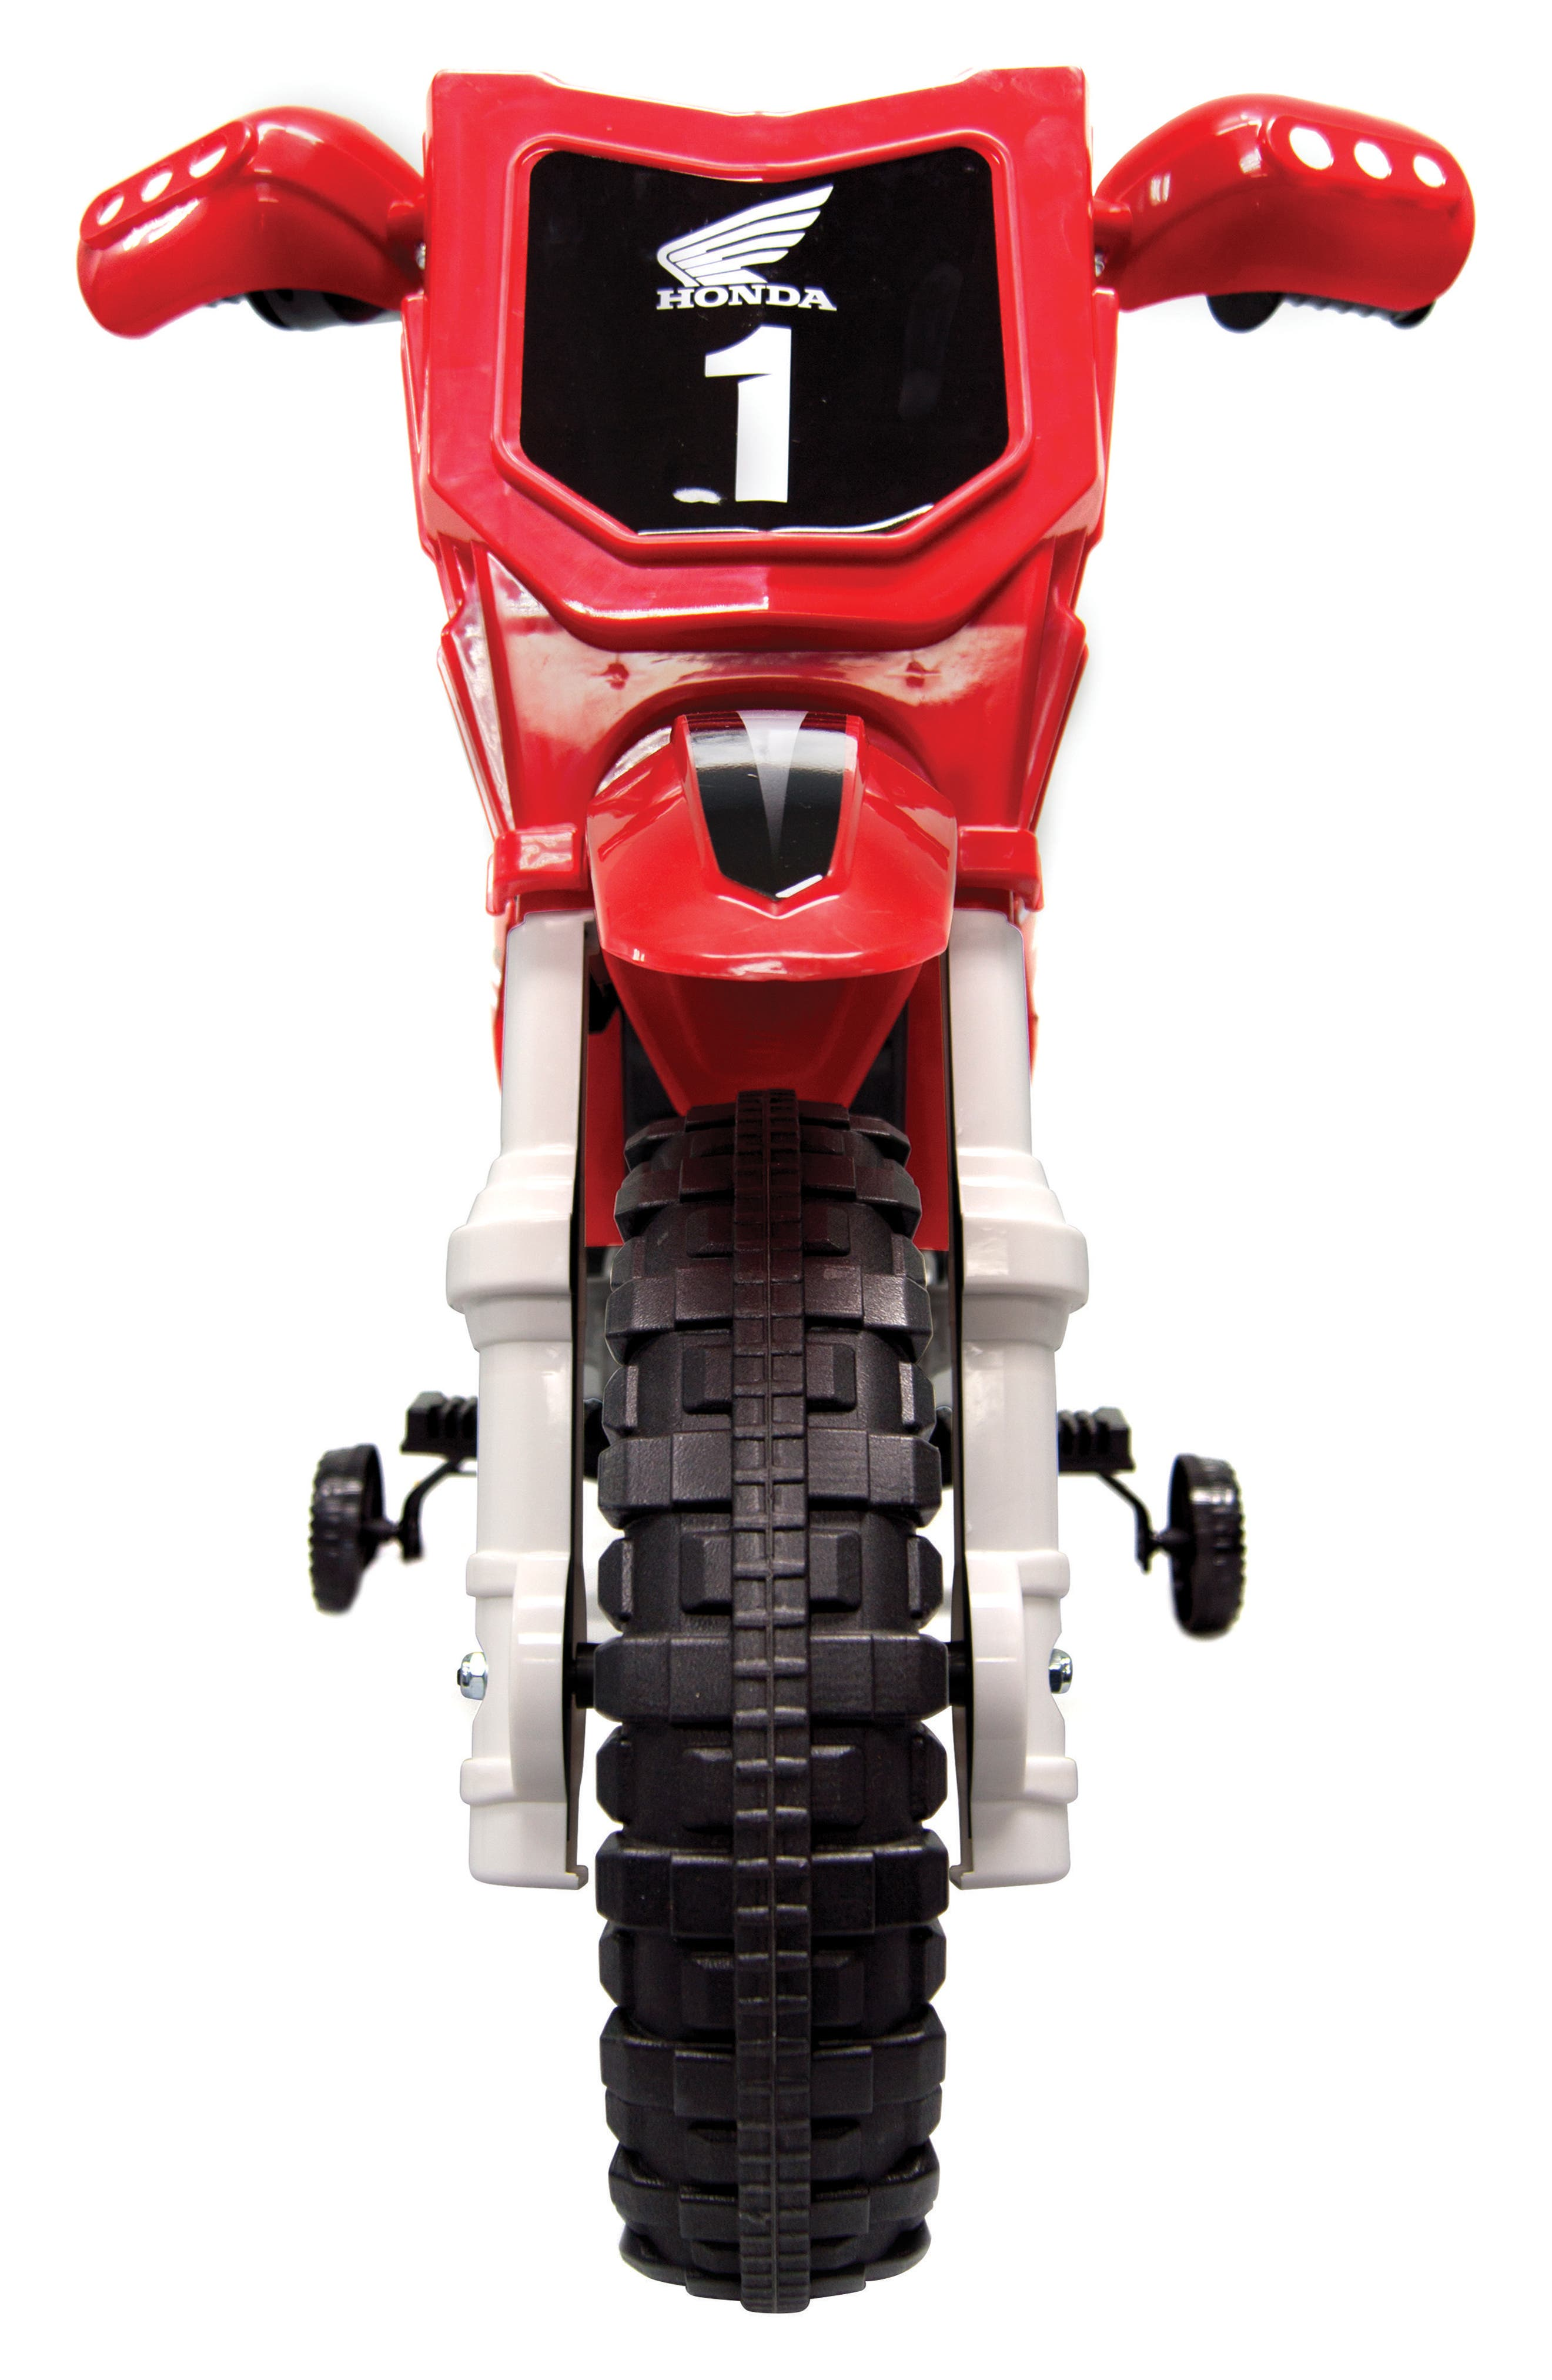 Honda Dirt Bike Ride-On Toy Motorcycle,                             Alternate thumbnail 4, color,                             RED